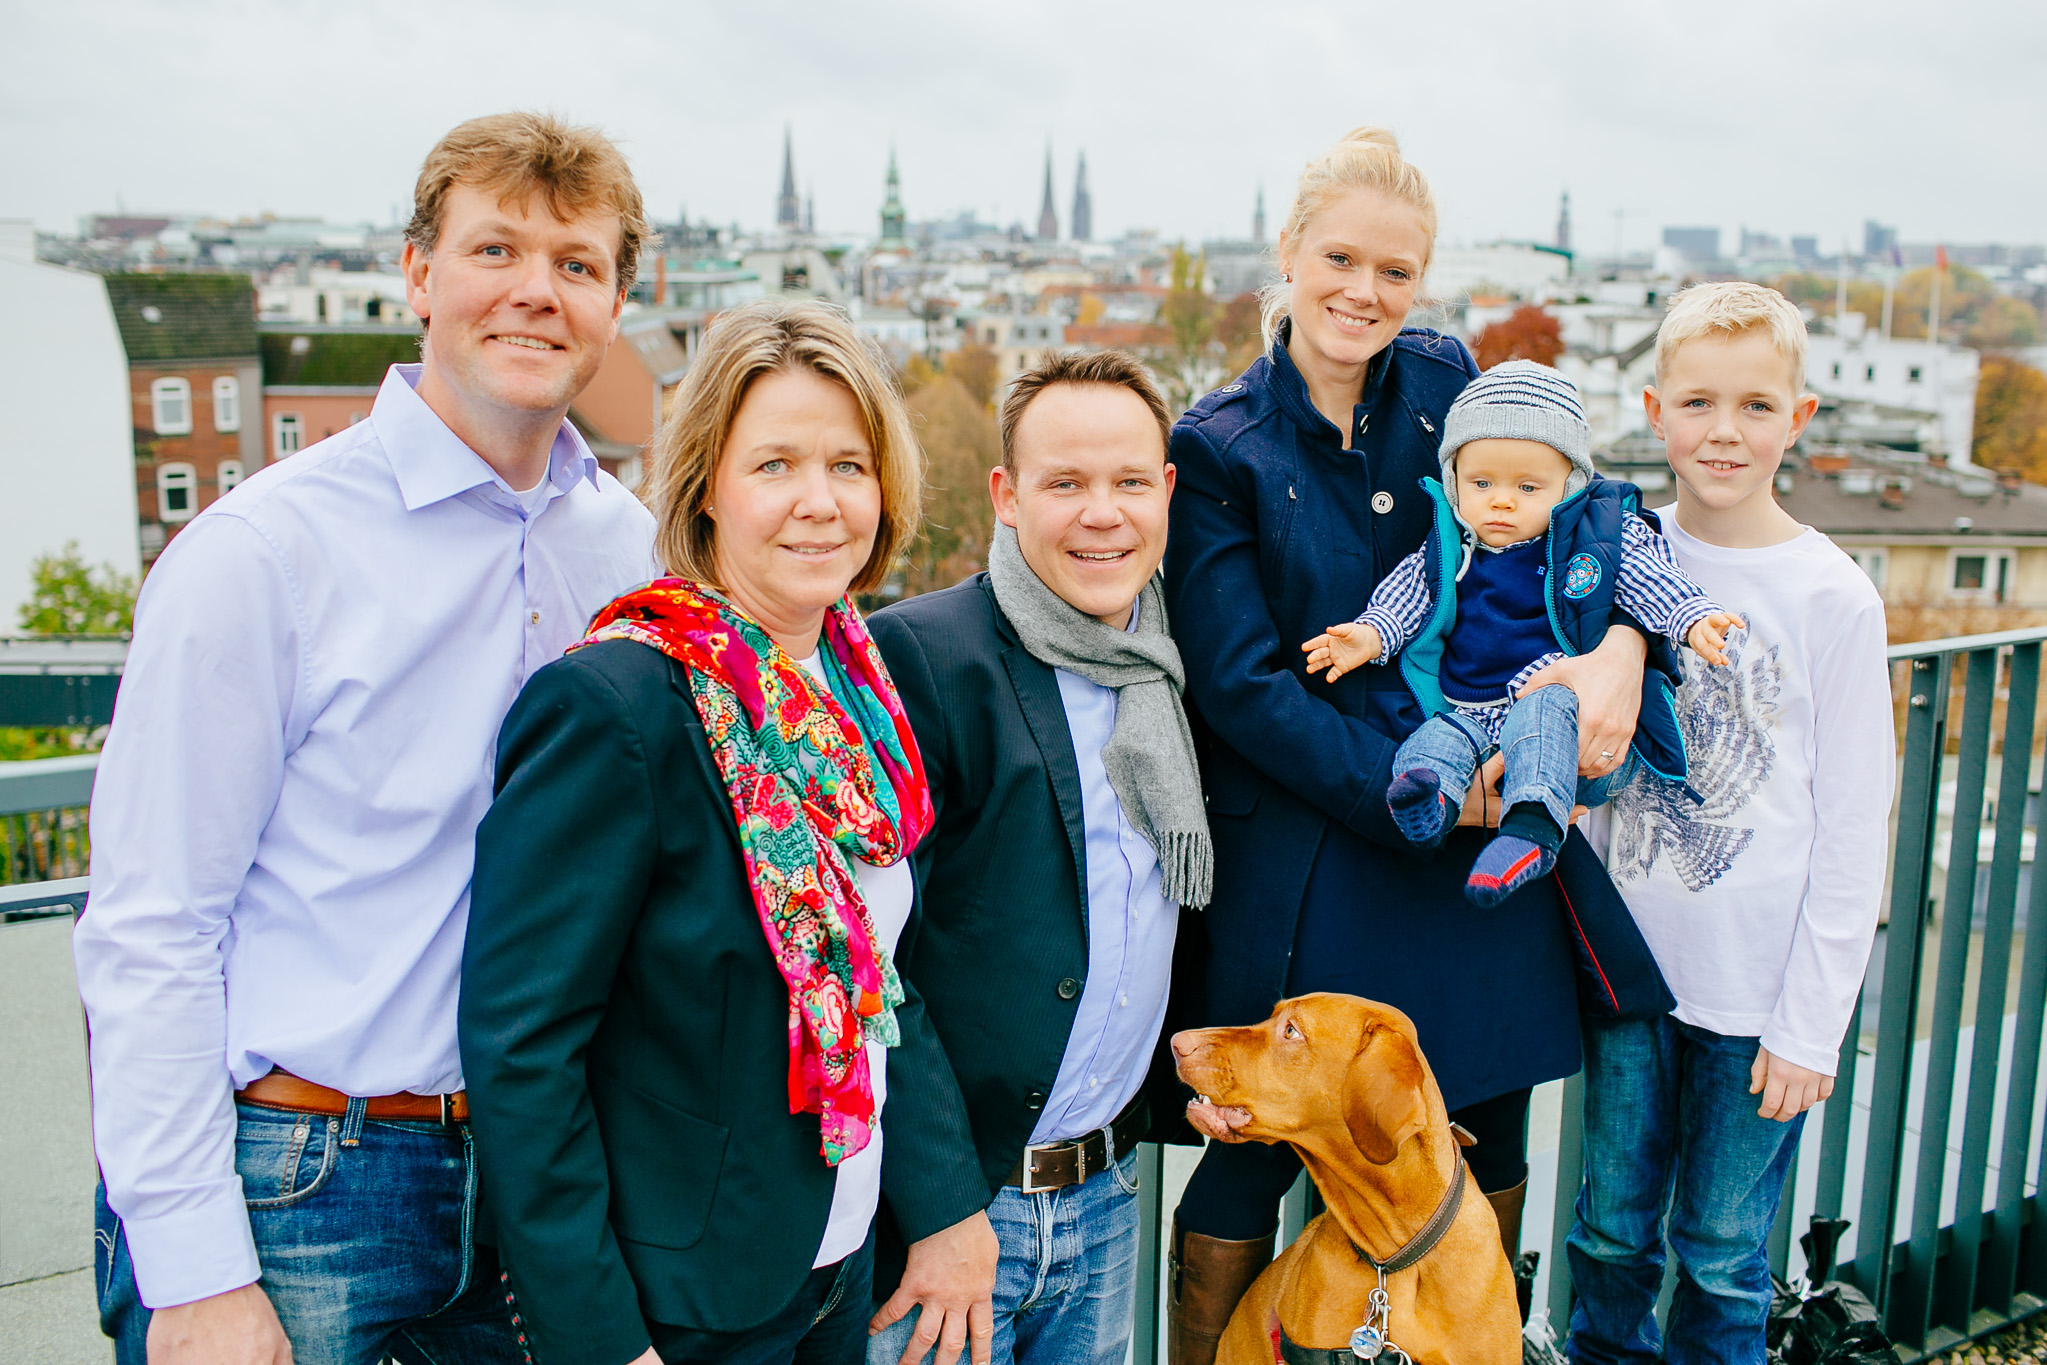 familienfotoshooting-GB-7